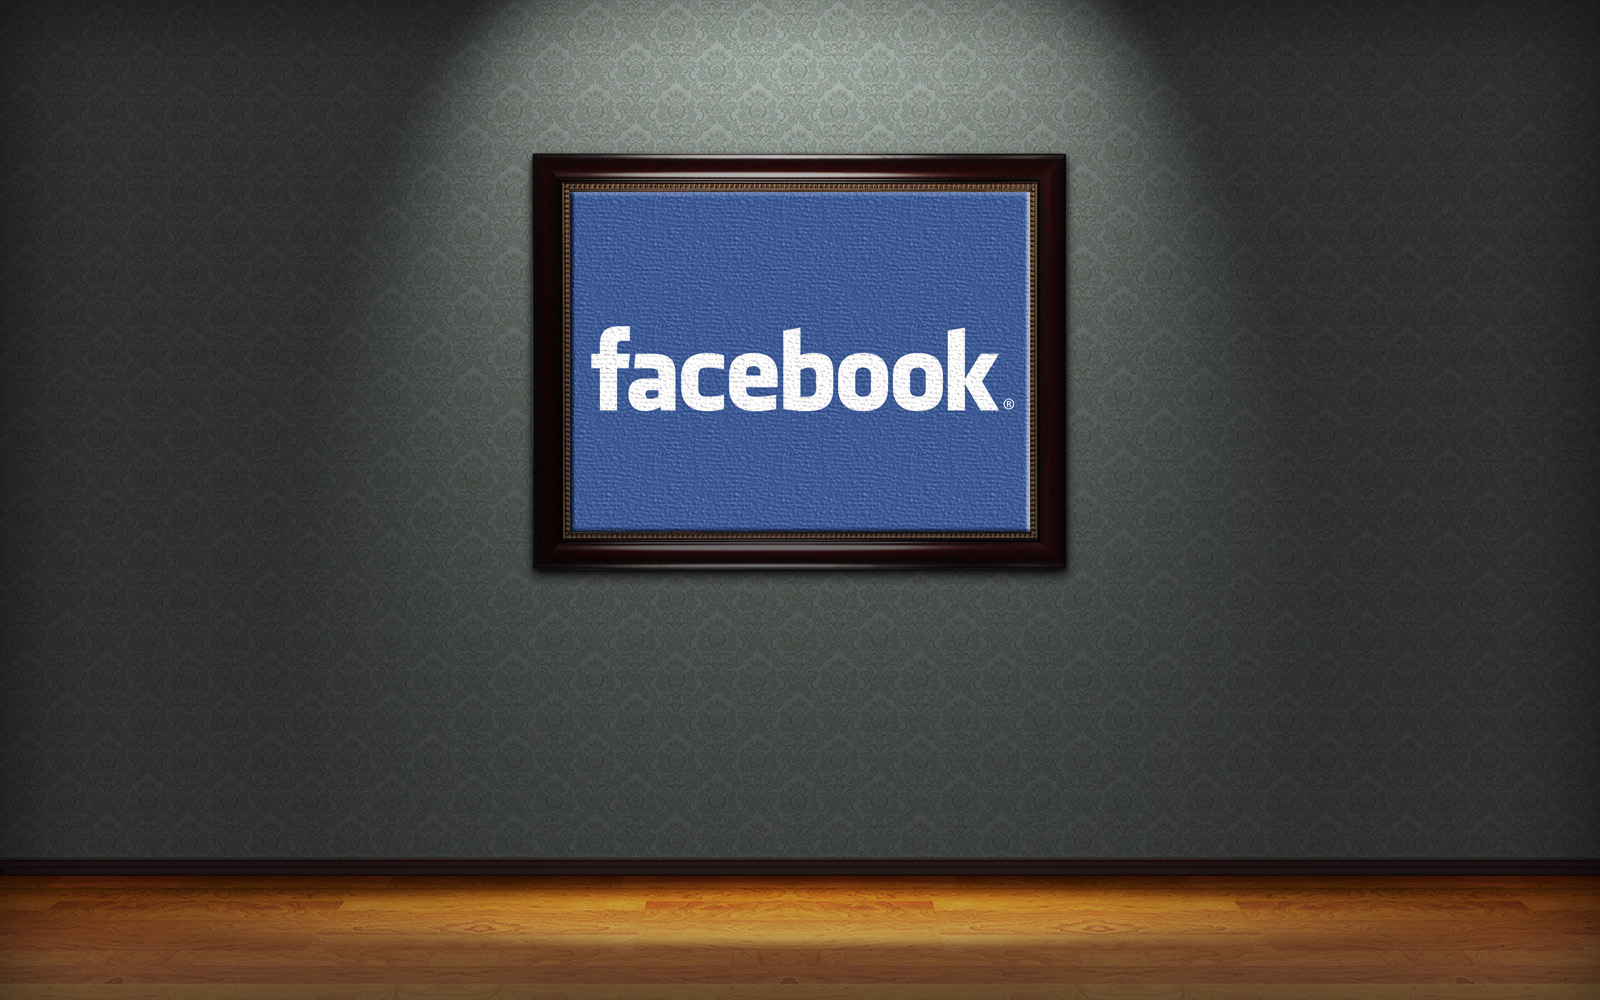 Facebook Funny Wallpaper